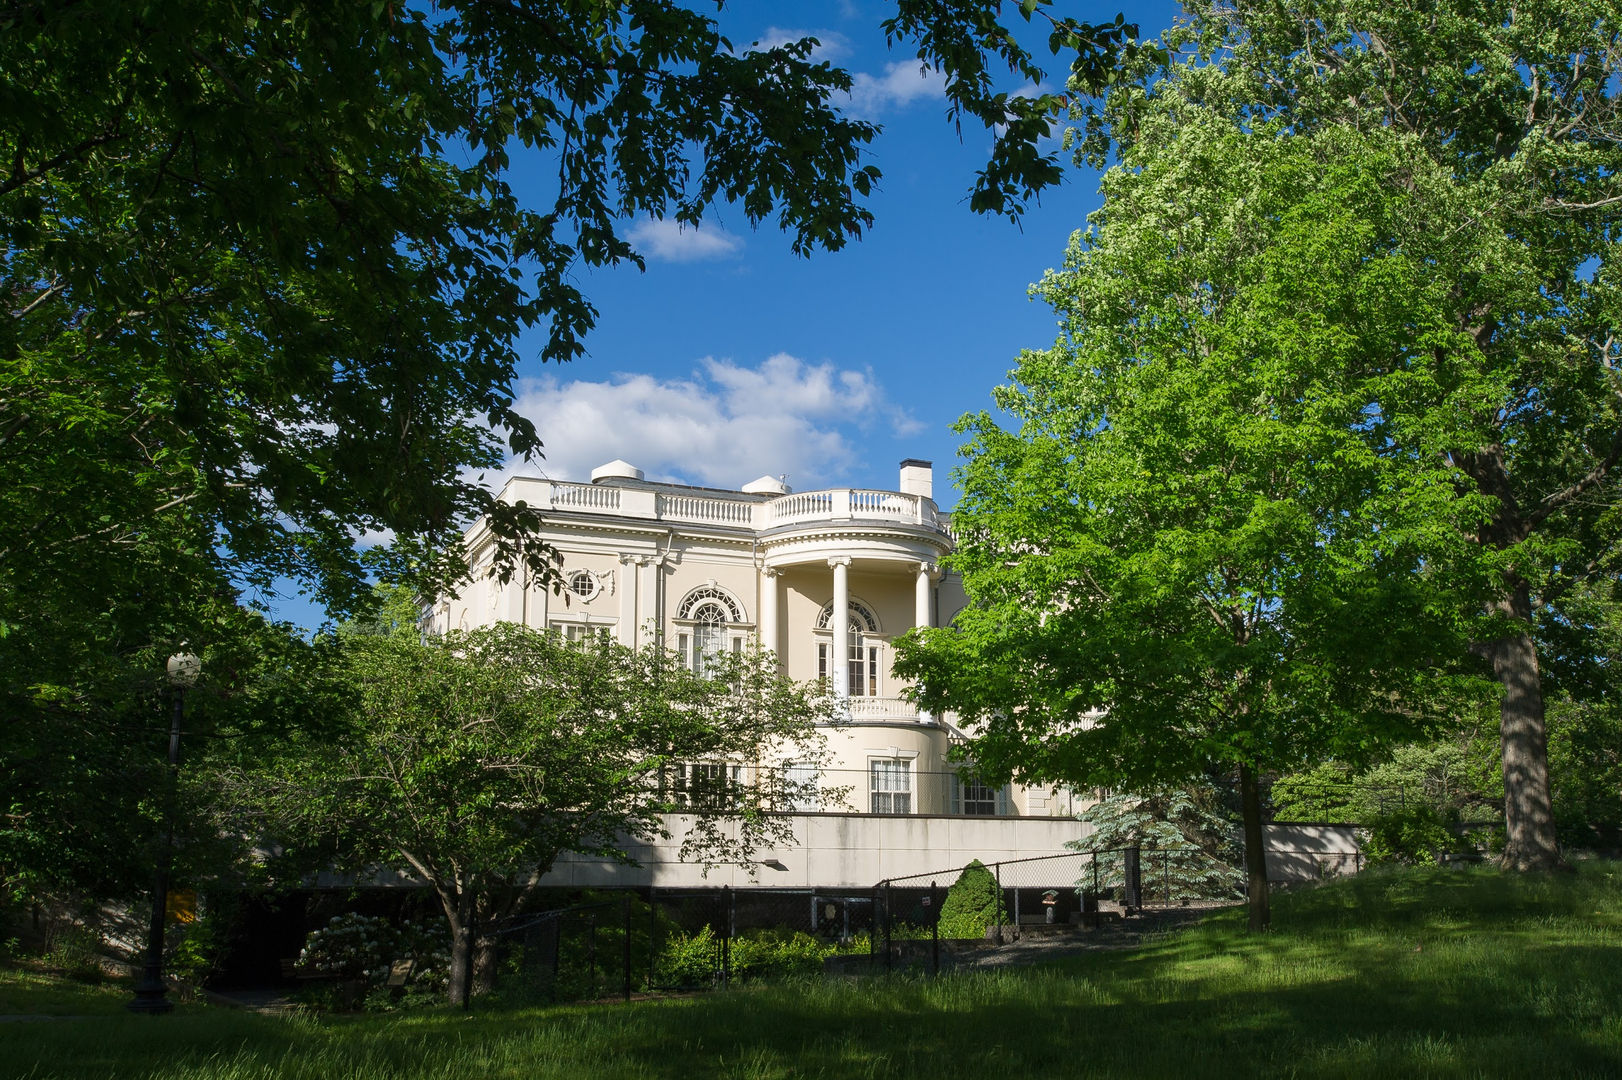 Peabody Institute Library, Danvers